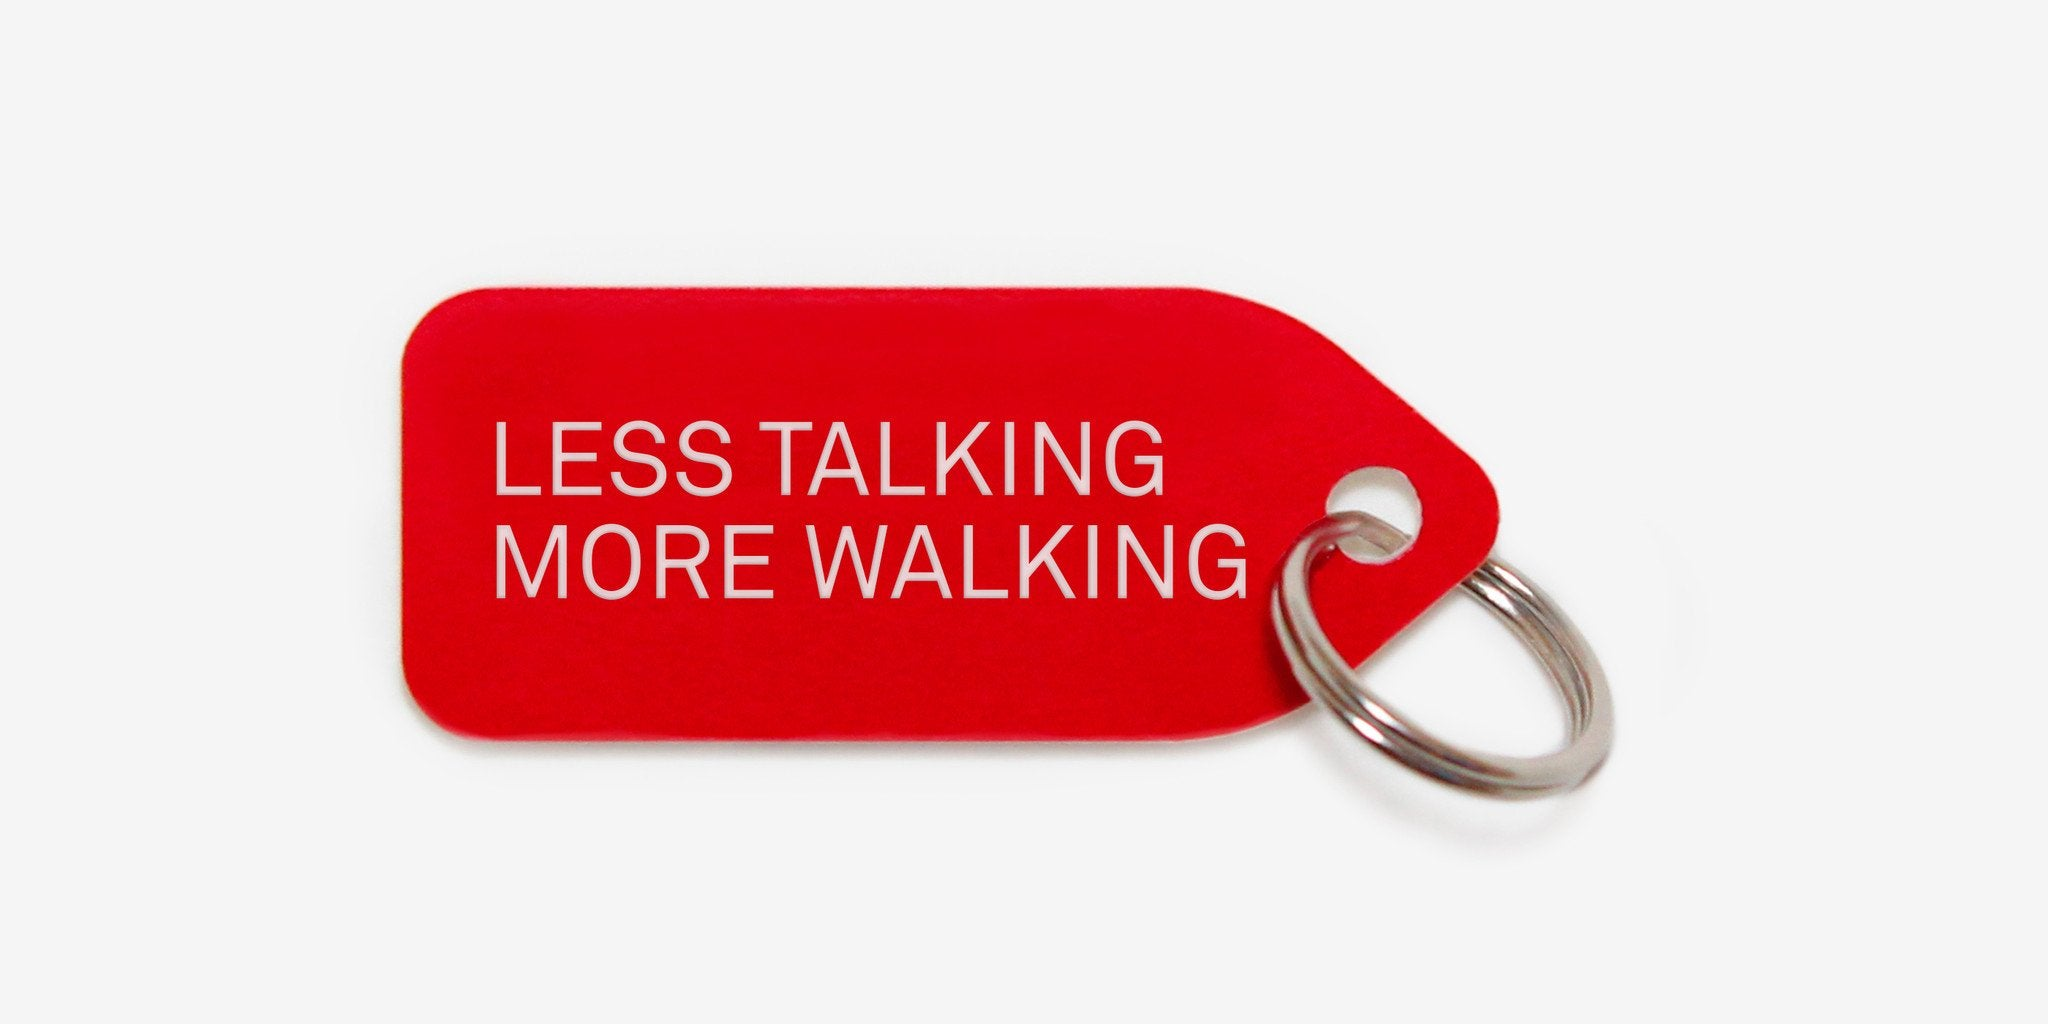 Less talking more walking